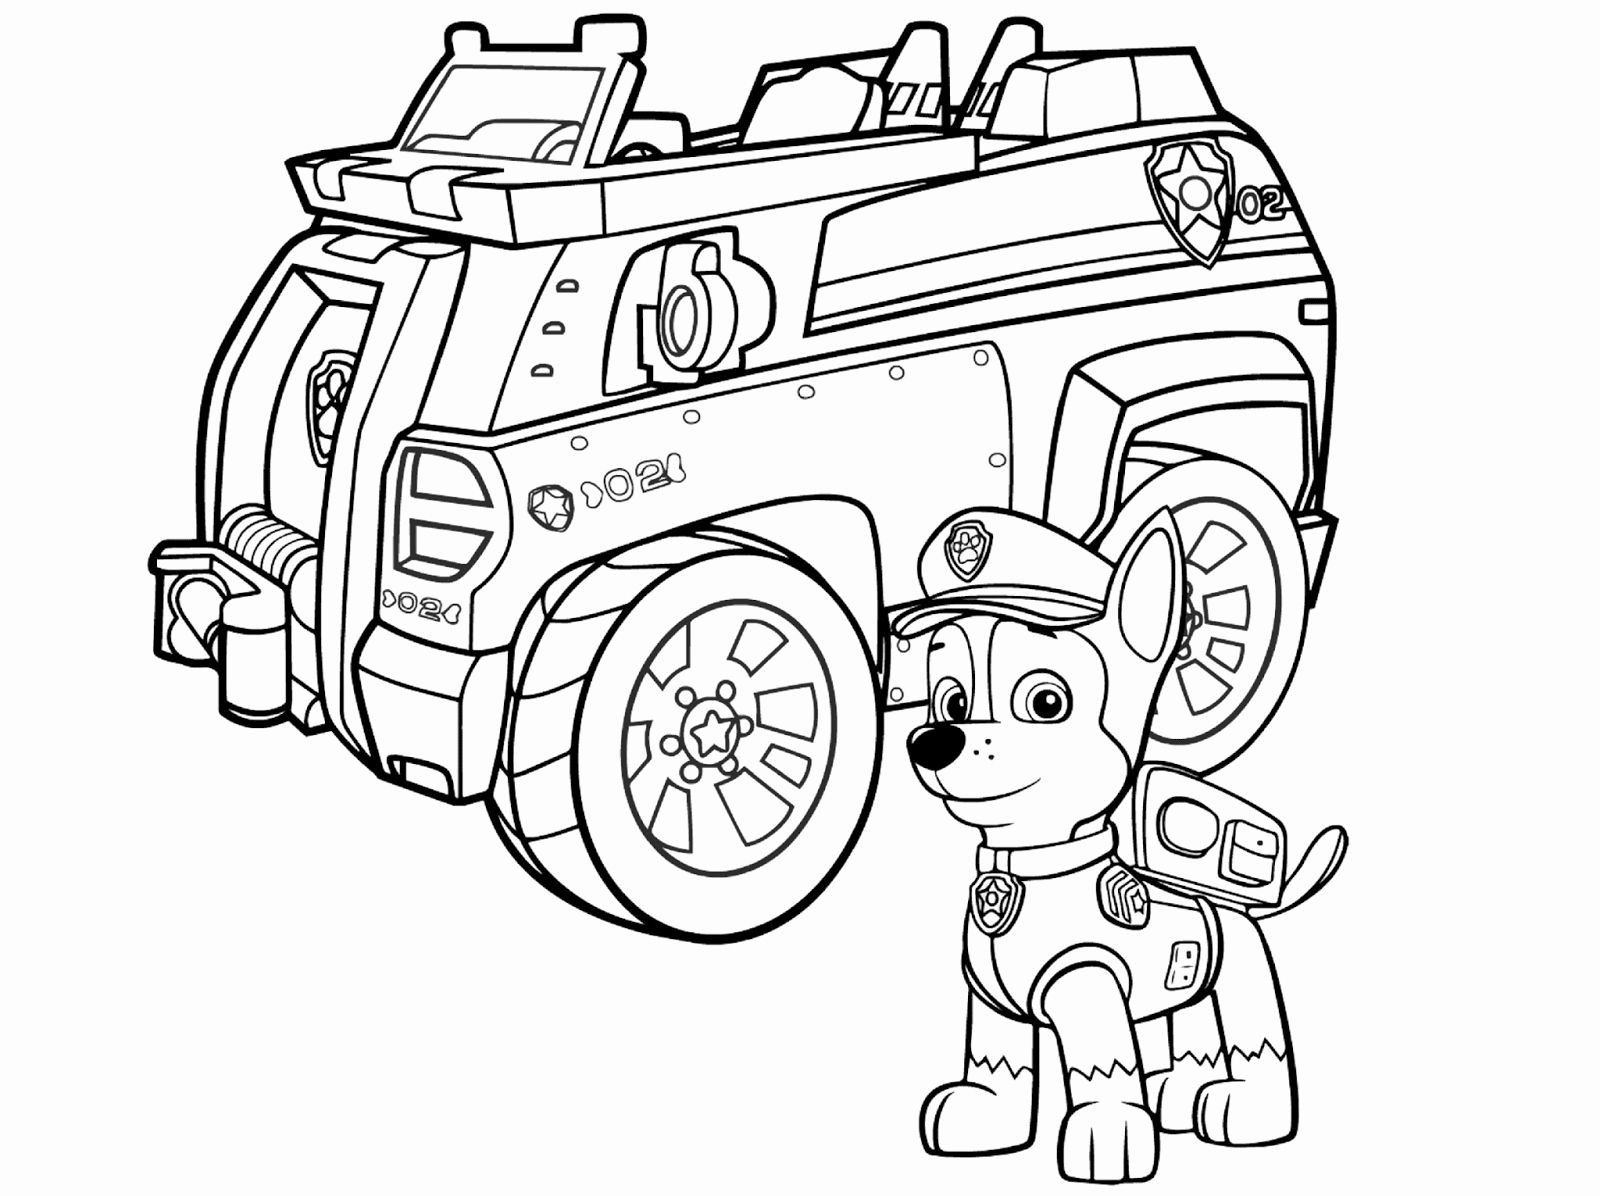 Chase Paw Patrol Coloring Page Luxury Free Nick Jr Paw Patrol Coloring Pages Paw Patrol Coloring Pages Paw Patrol Coloring Truck Coloring Pages